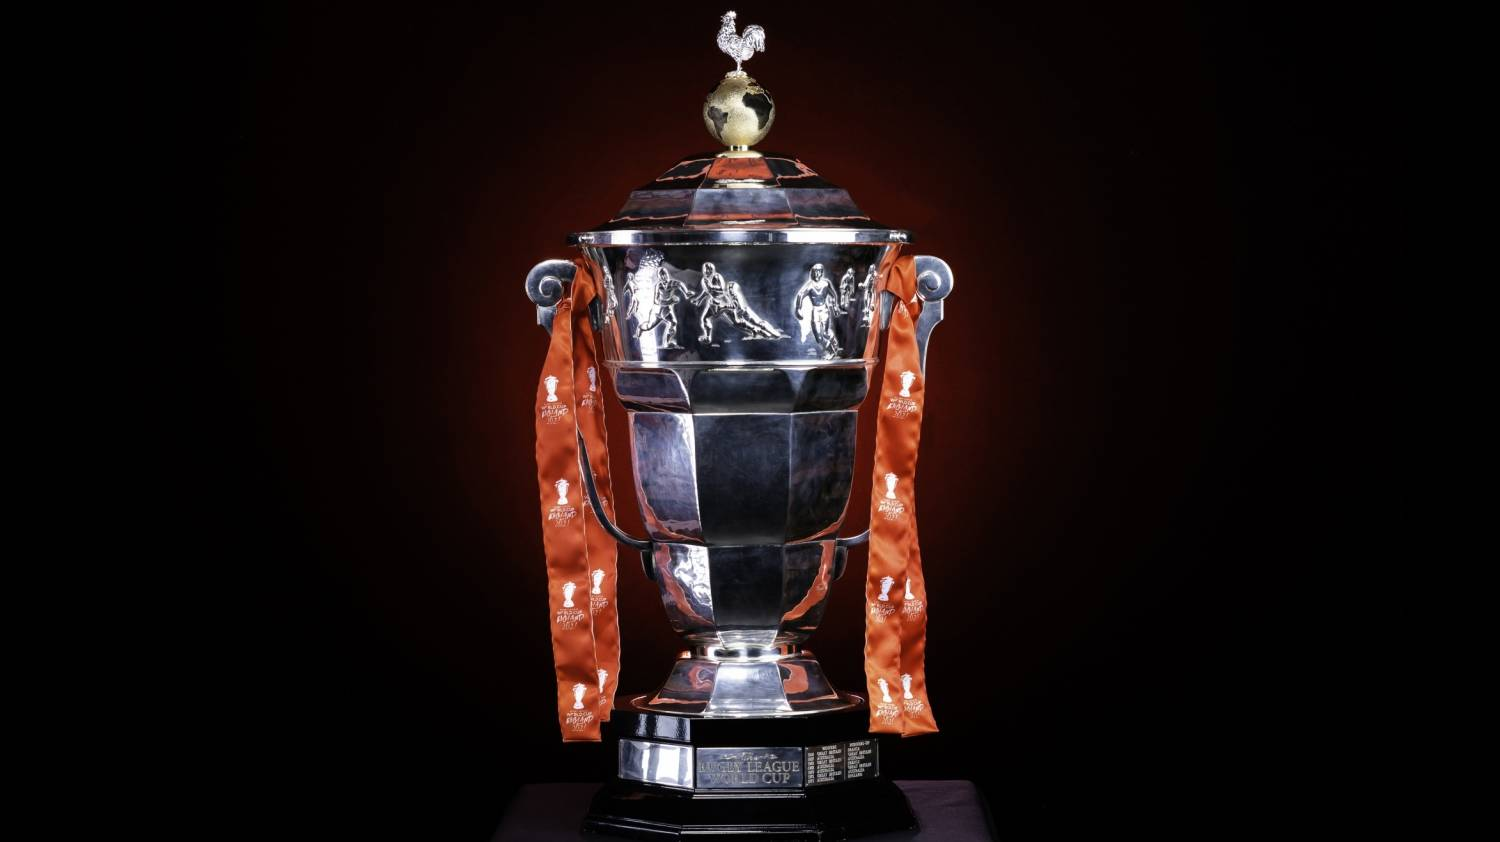 RLWC2021 set to be the most inclusive yet